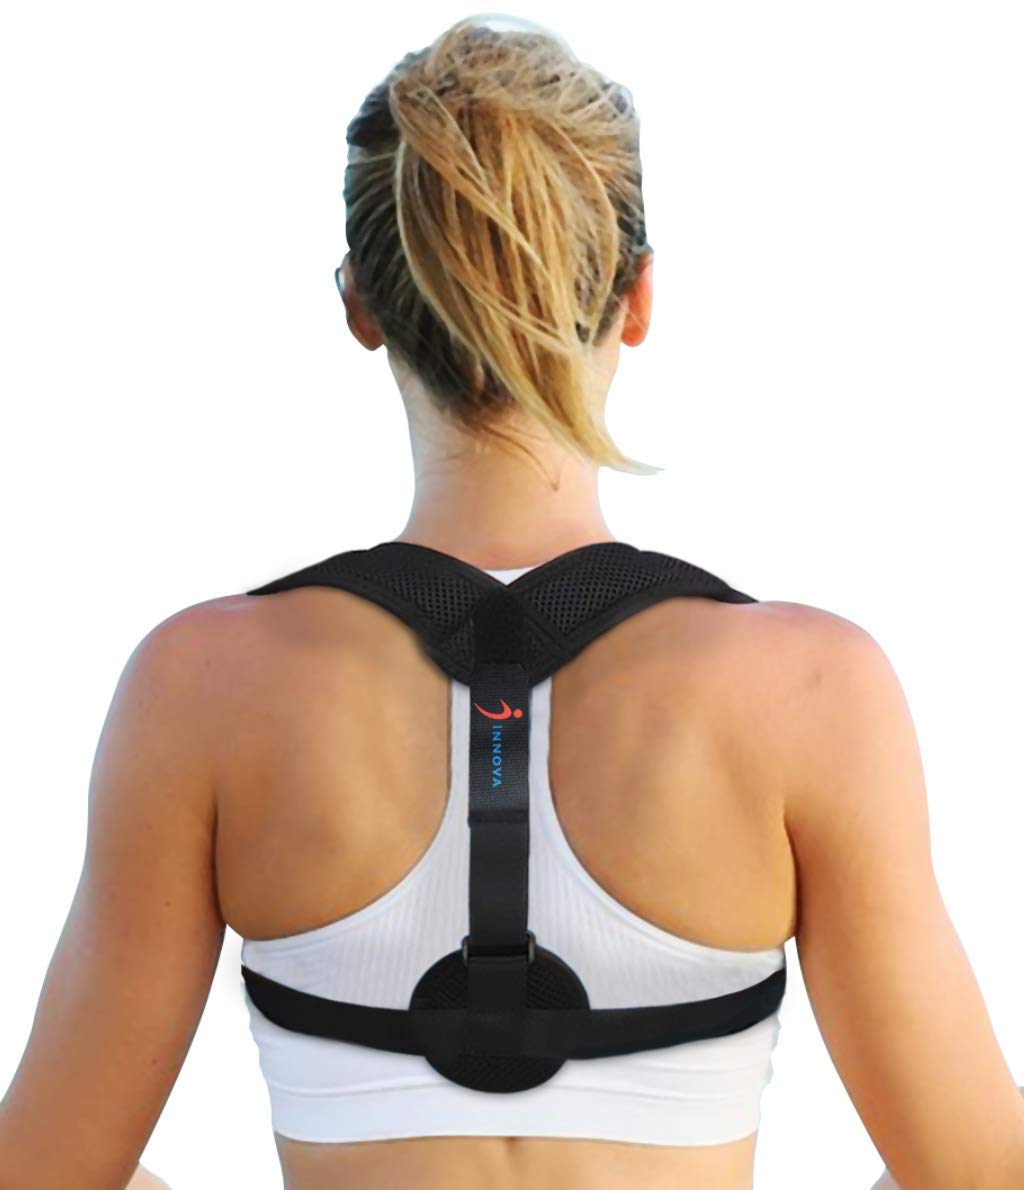 【2019 New】Innova Posture Corrector for Women & Men - Adjustable Effective & Comfortable Upper Back Brace for Clavicle Support & Providing Pain Relief from Neck & Back by GS1